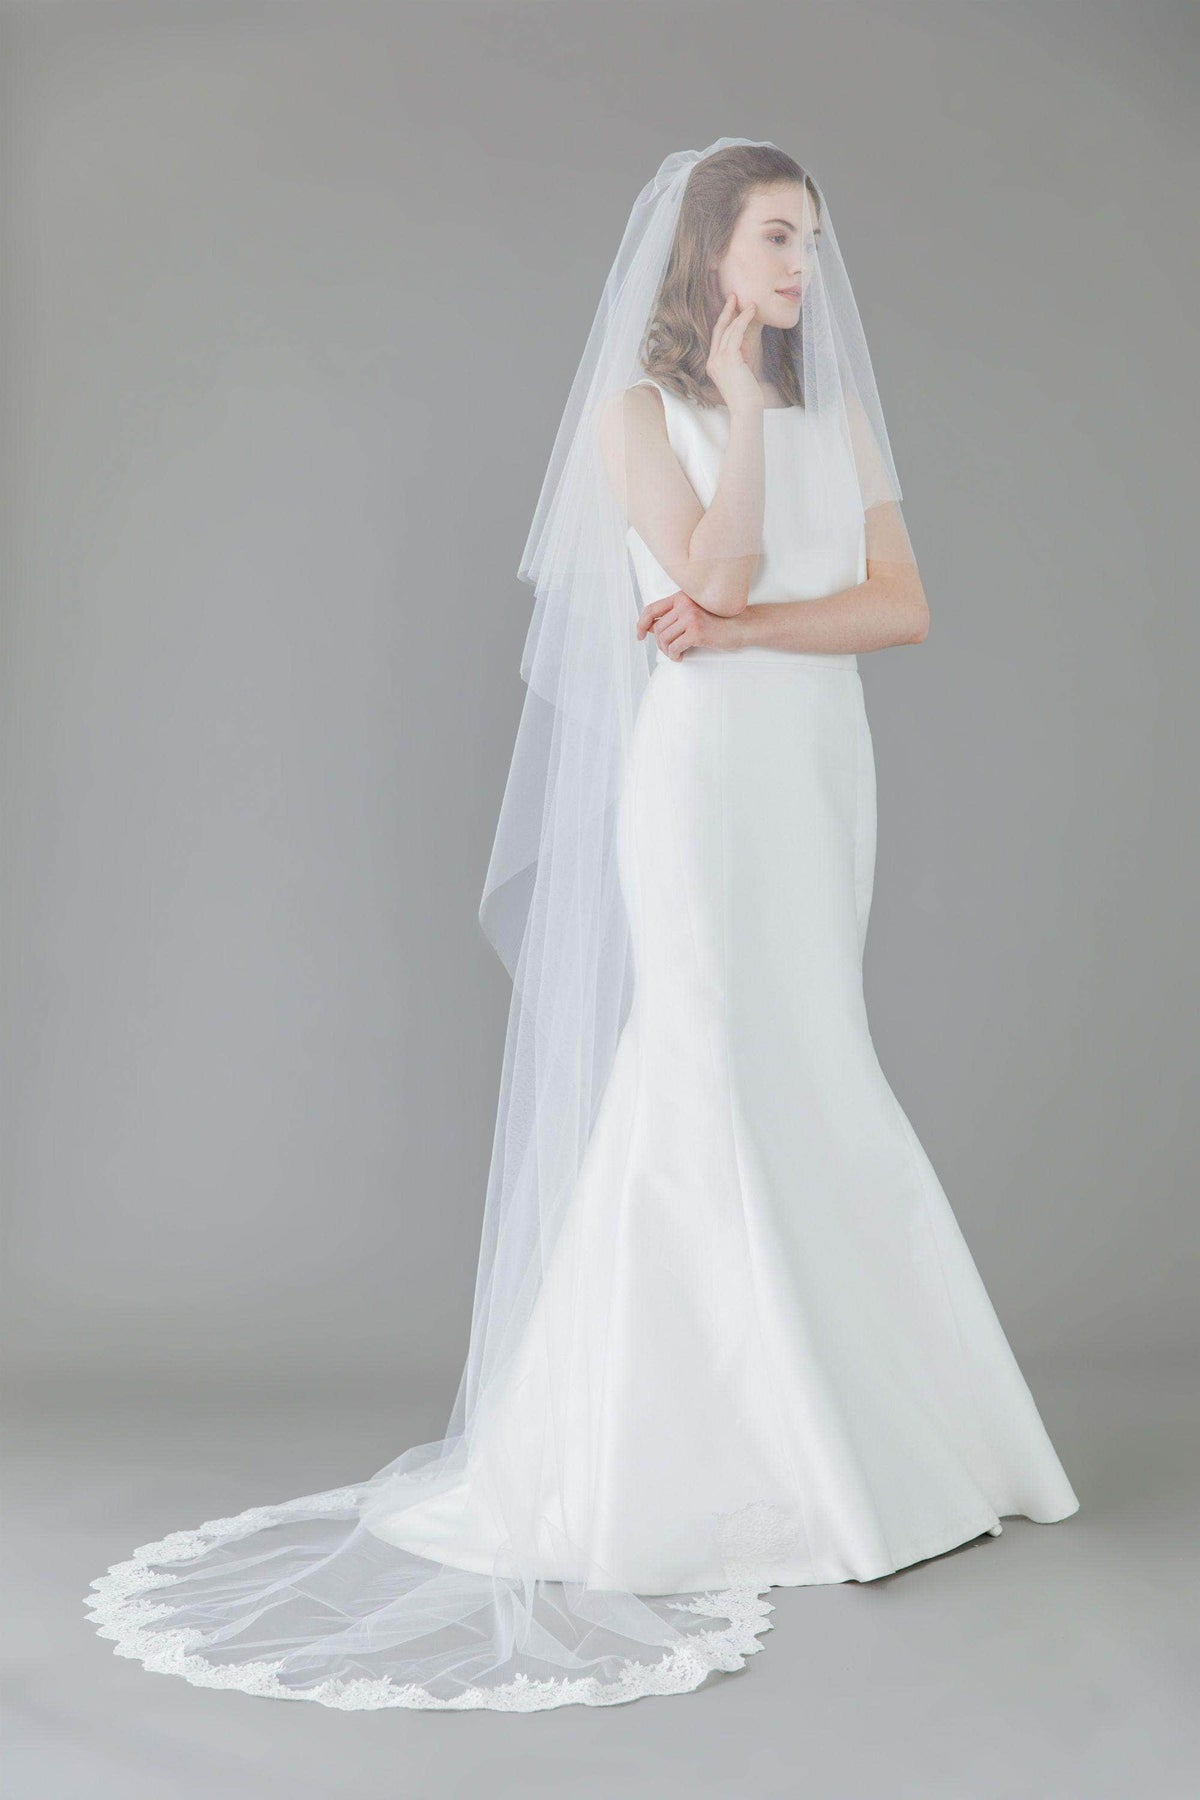 Wedding Veil Two tier semi lace edged ivory wedding veil - 'Prudence'